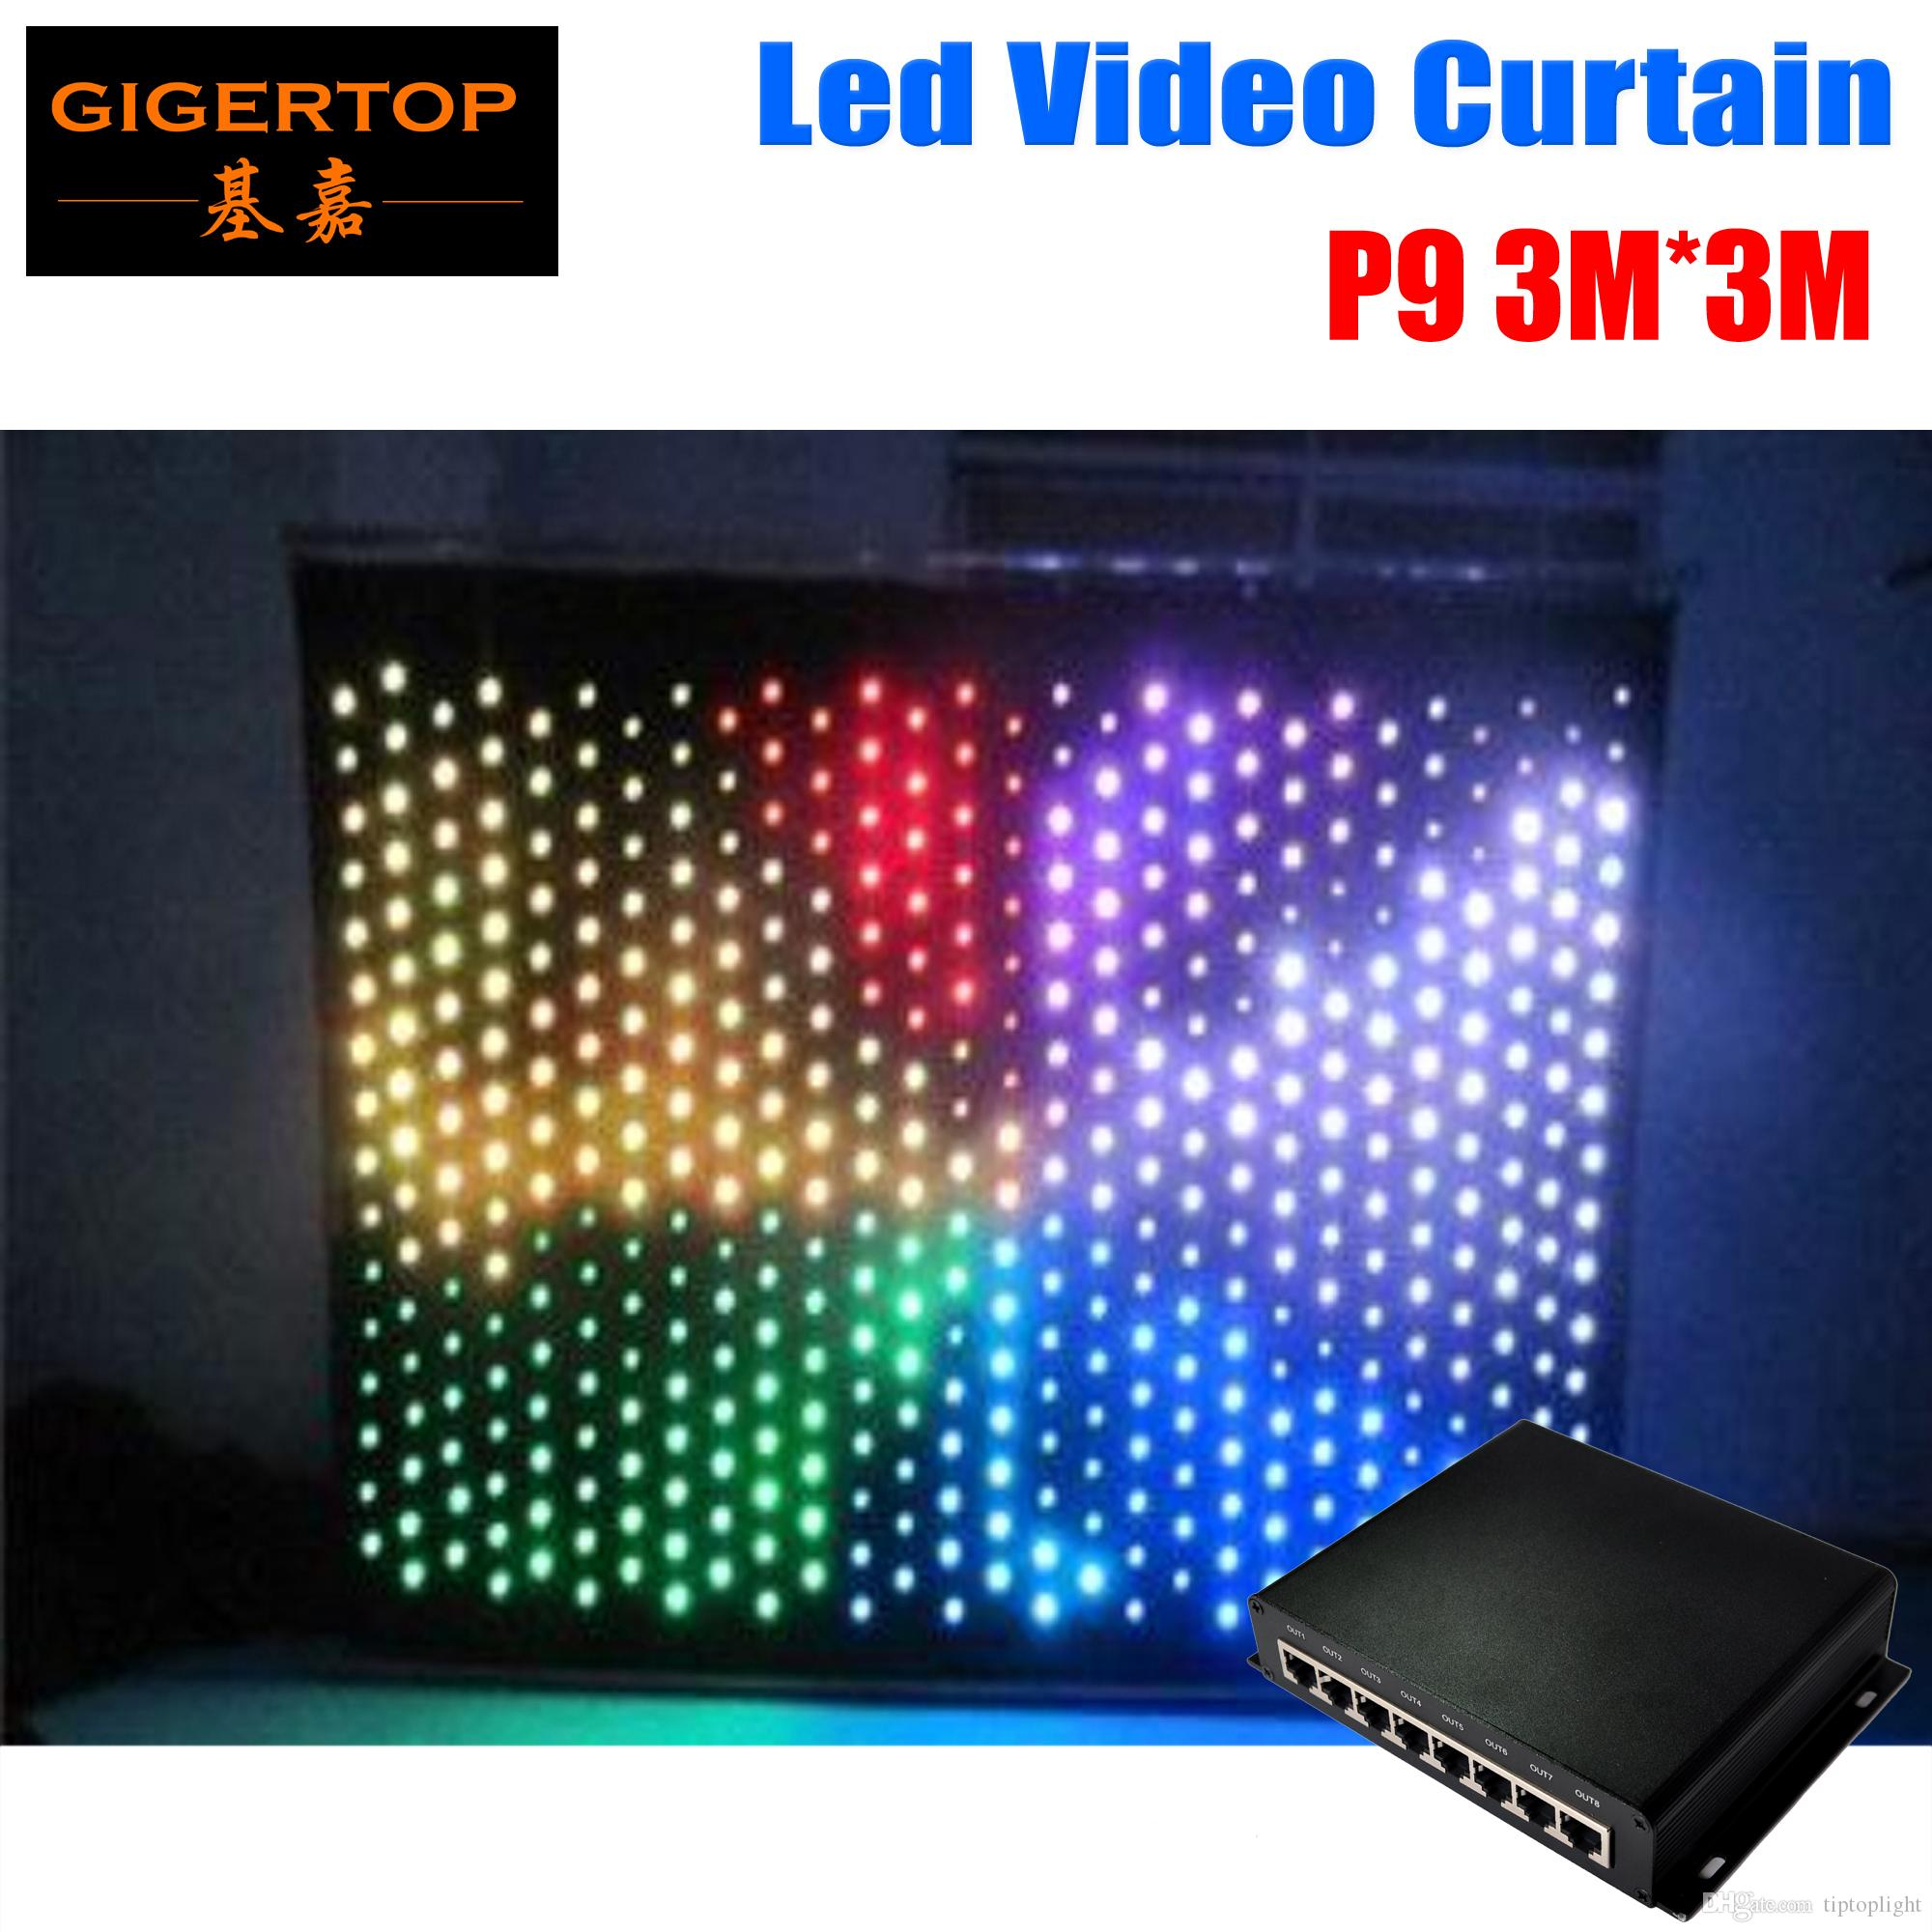 P9 3M*3M PC Mode Led Video Curtain,LED Graphic Curtain P9 With Tricolor 3IN1 Led Light Curtains,Stage Lighting DJ Backdrops